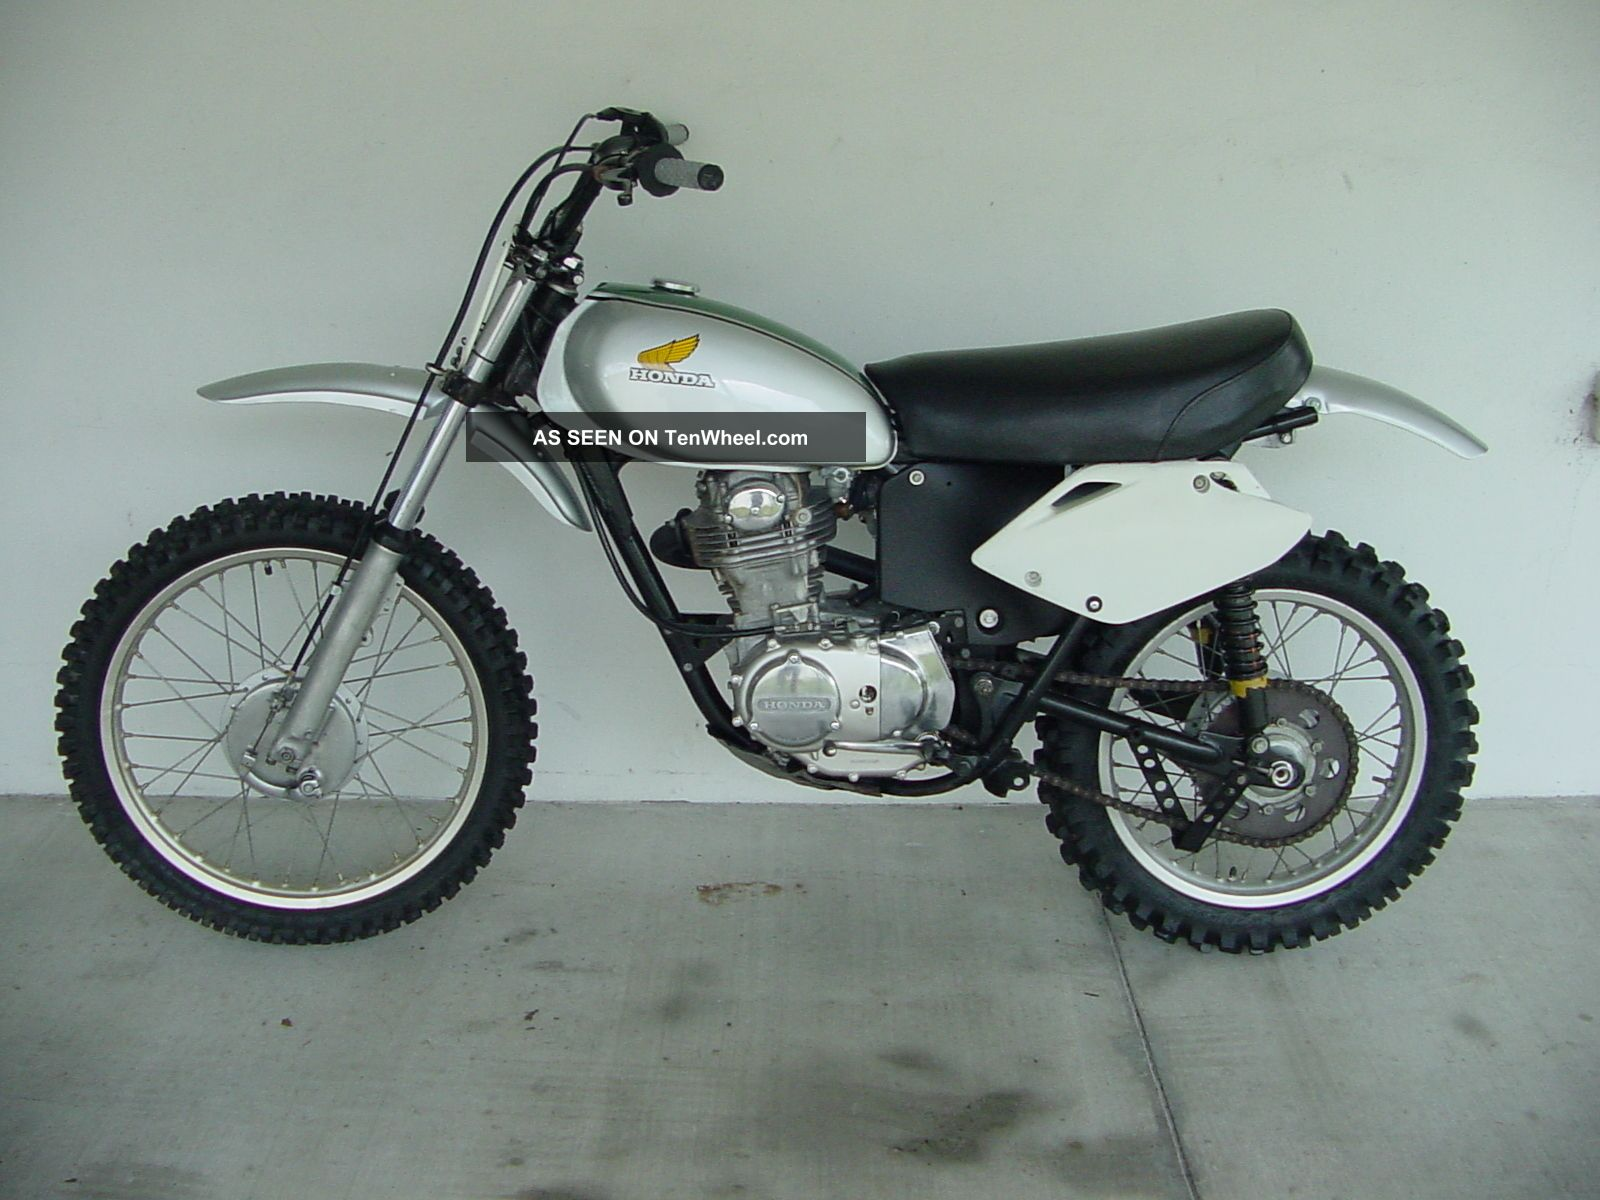 Vintage honda dirt bike